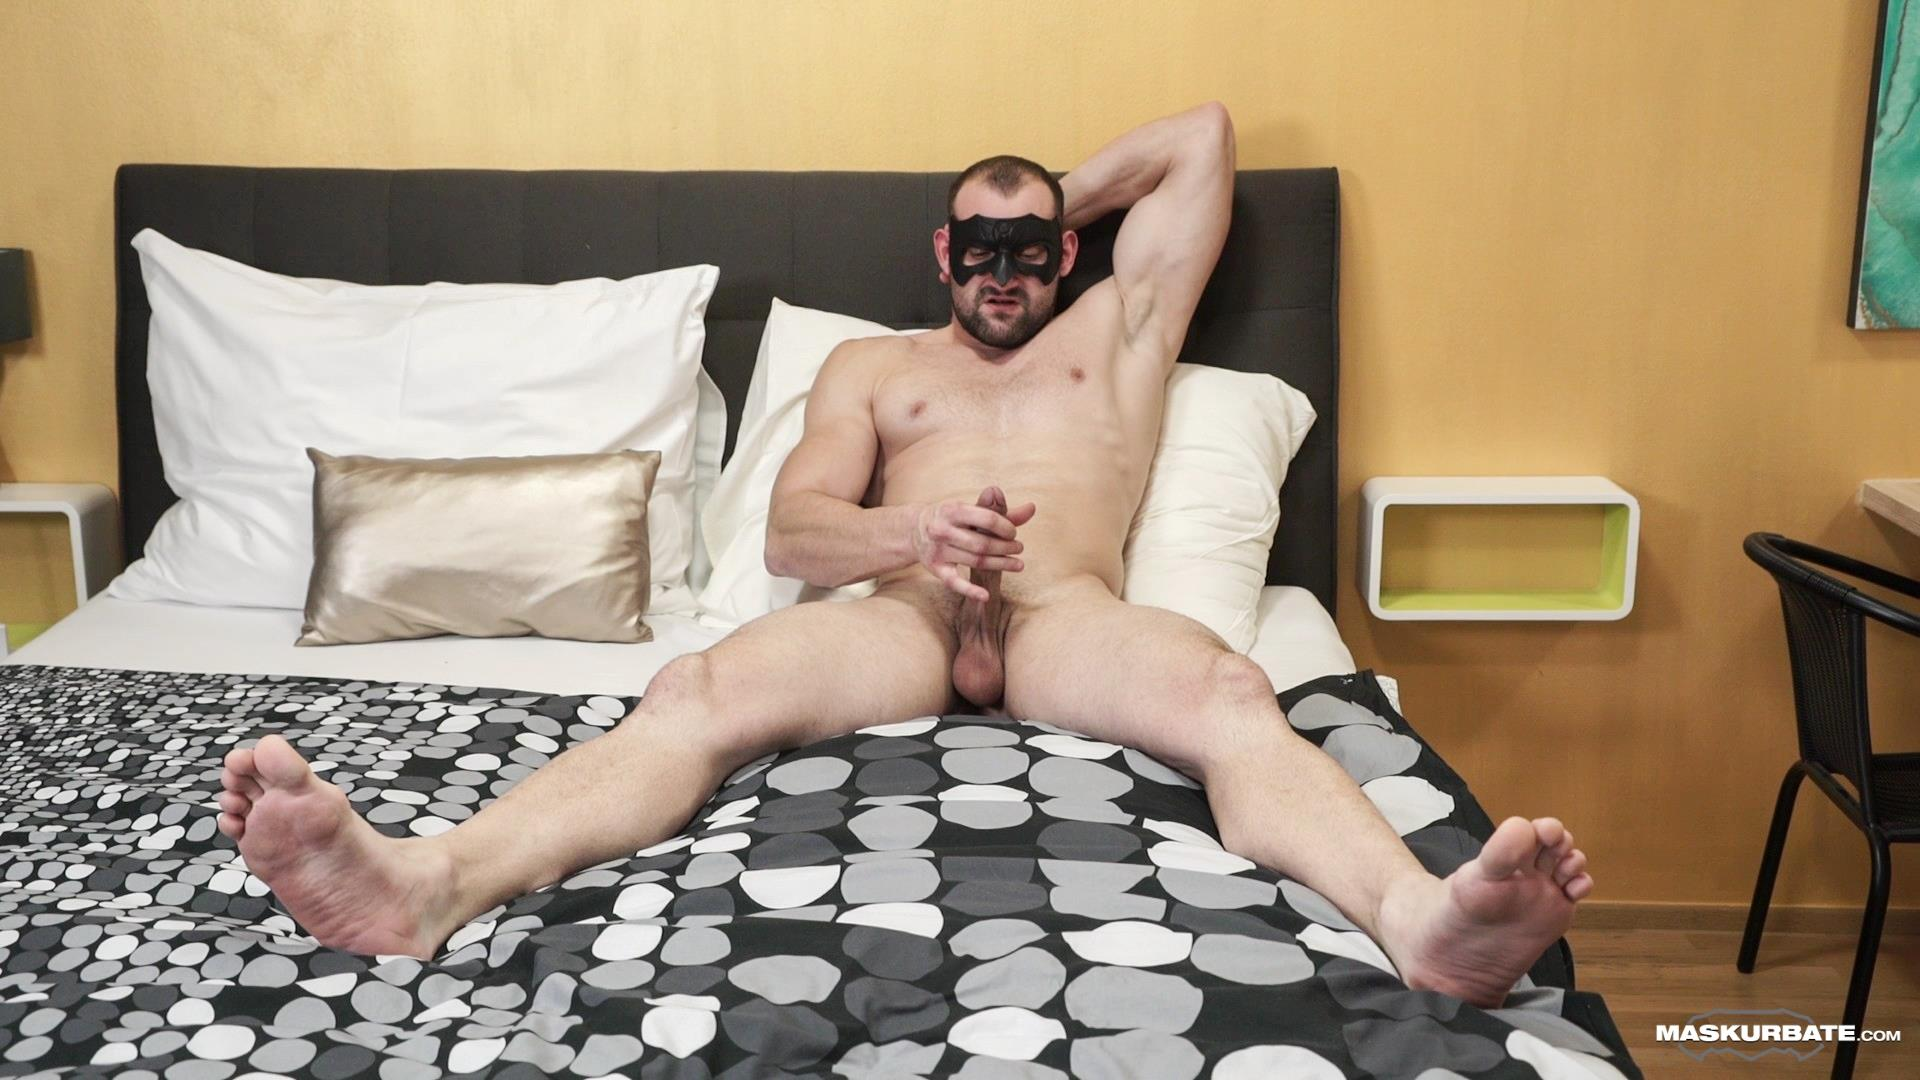 Maskurbate-Obaid-Bisexual-Muscle-Hunk-With-A-Big-Uncut-Cock-Jerking-off-12 Bisexual Muscle Hunk Jerks Off His Big Uncut Cock